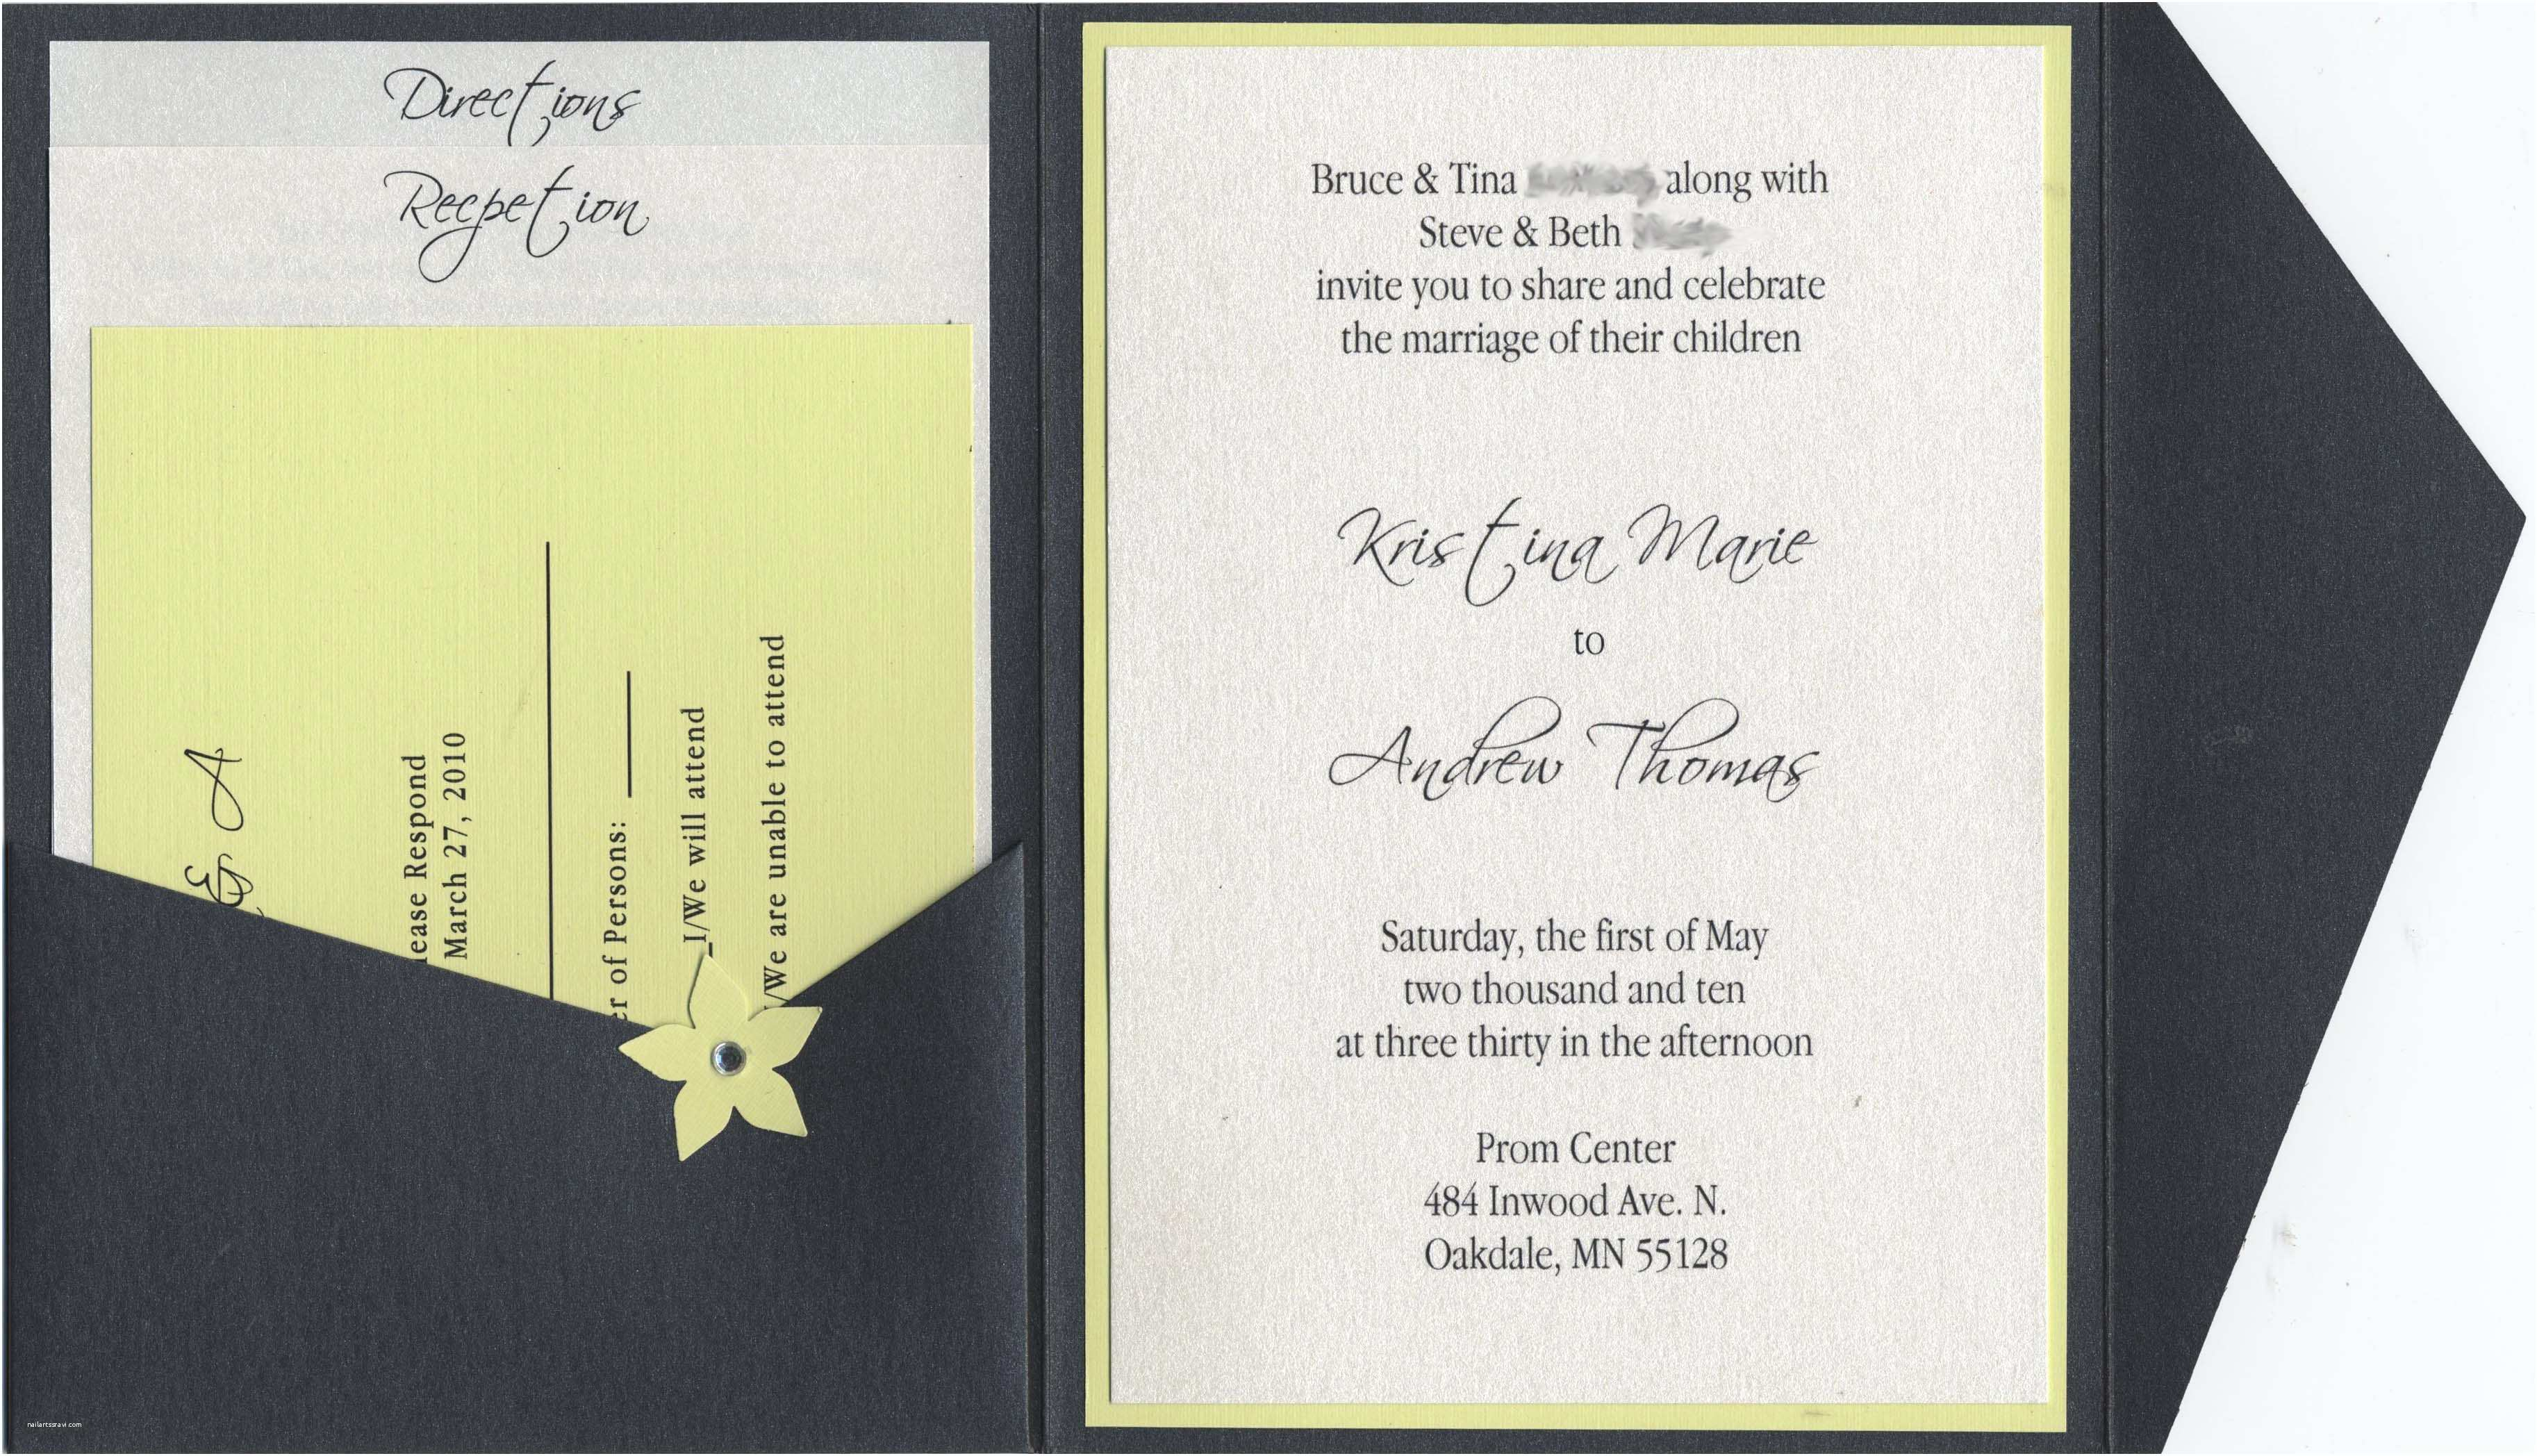 How to Make Your Wedding Invitations at Home Ideas About How to Make Wedding Invitations at Home for